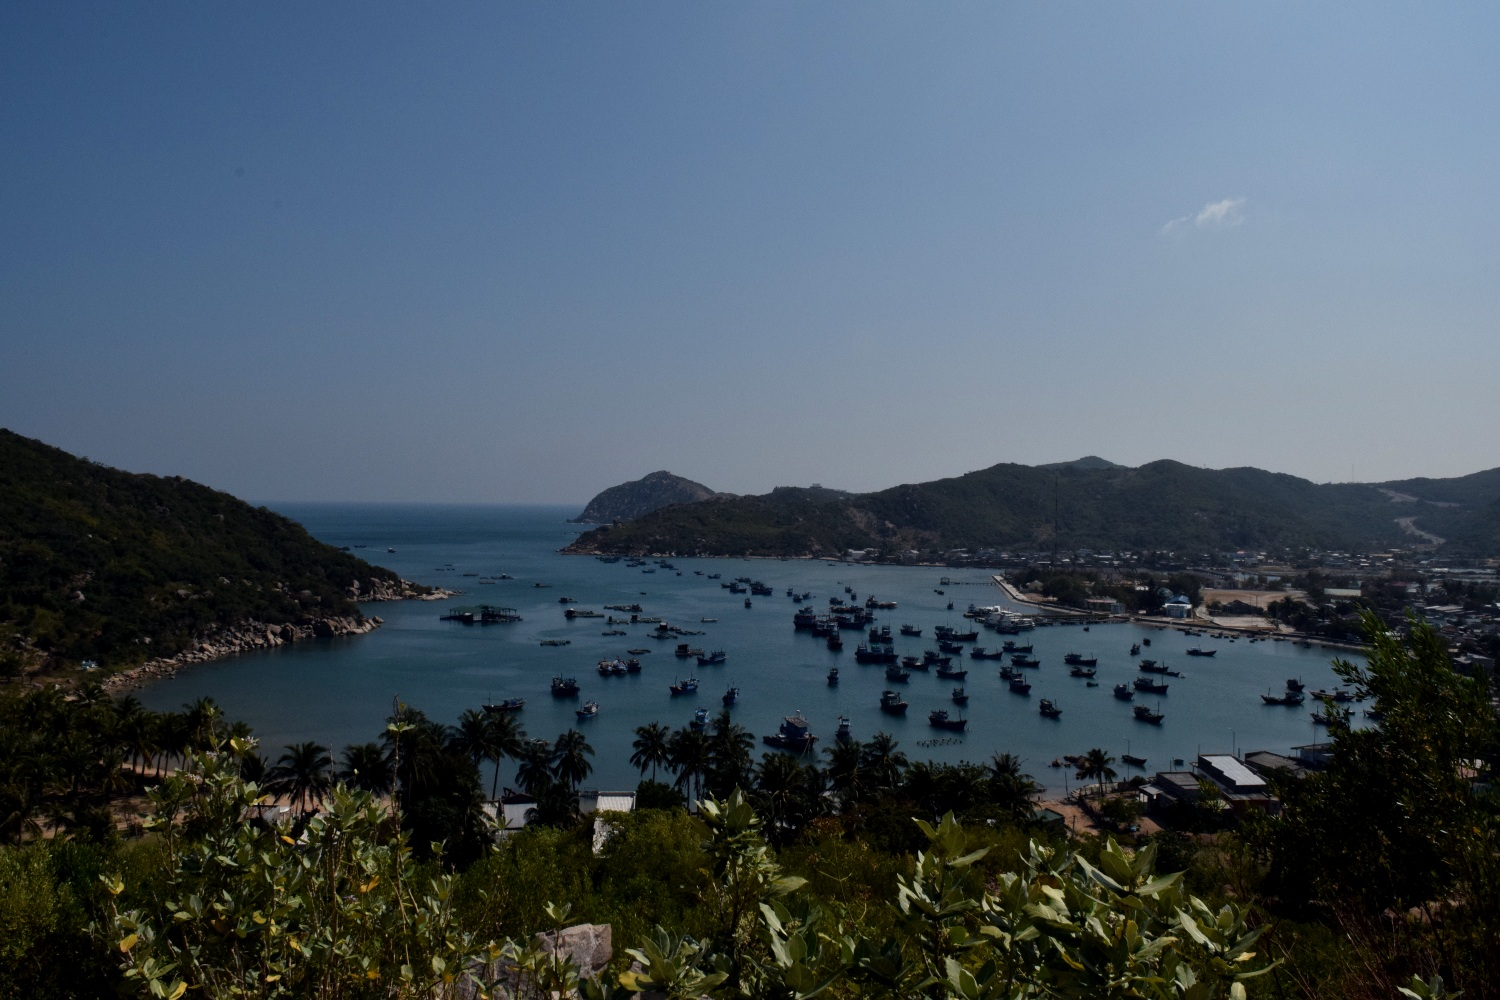 Overlook of a fishing village somewhere between Mui Ne and Nha Trang